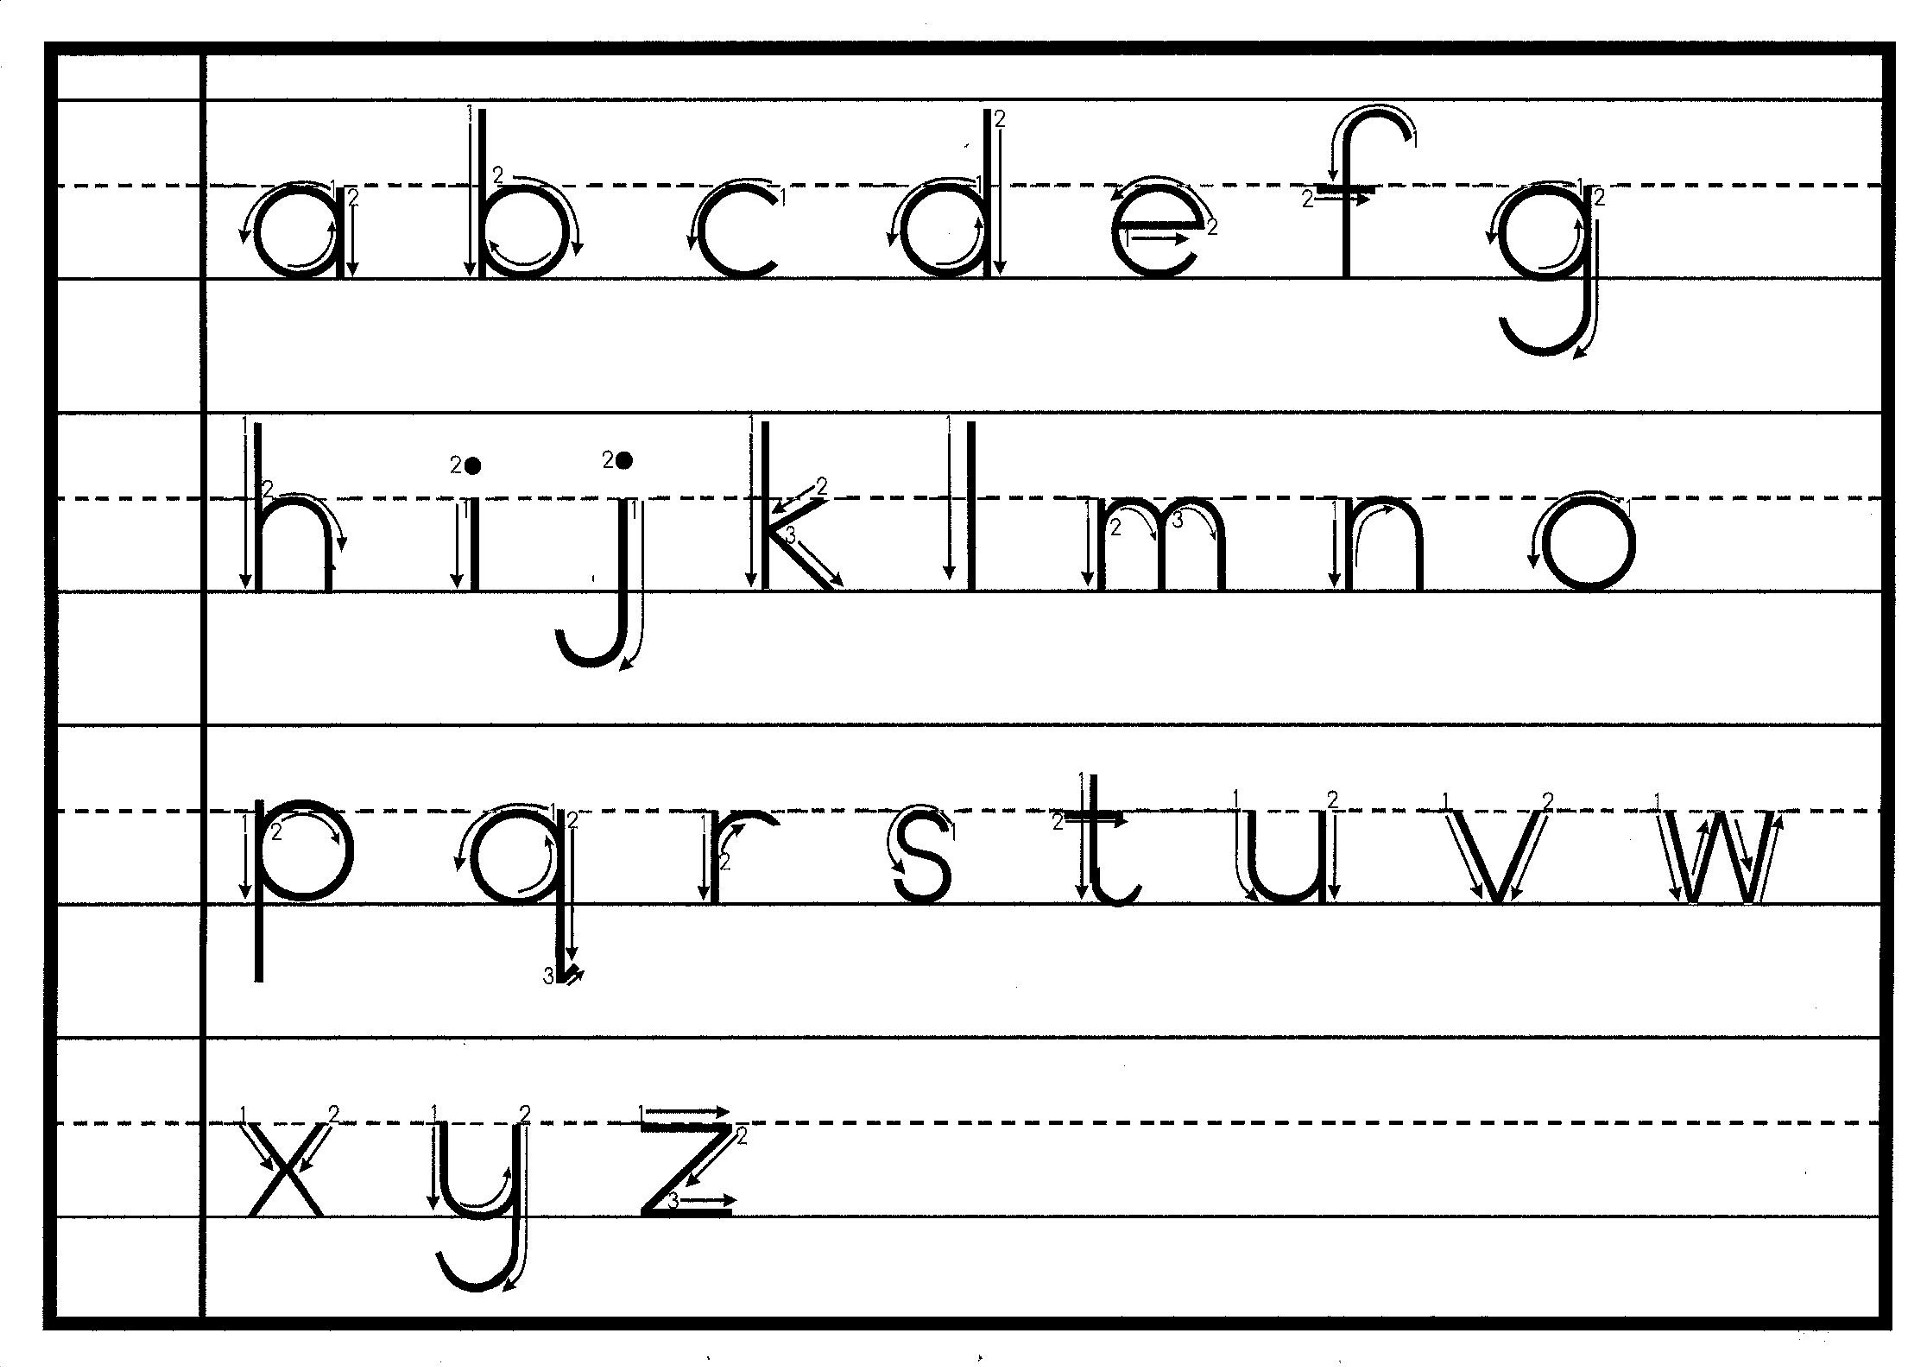 Worksheet Lowercase Alphabet Printables worksheet lowercase alphabet printables mikyu free letter handwriting worksheets intrepidpath lower case writing sheets prin